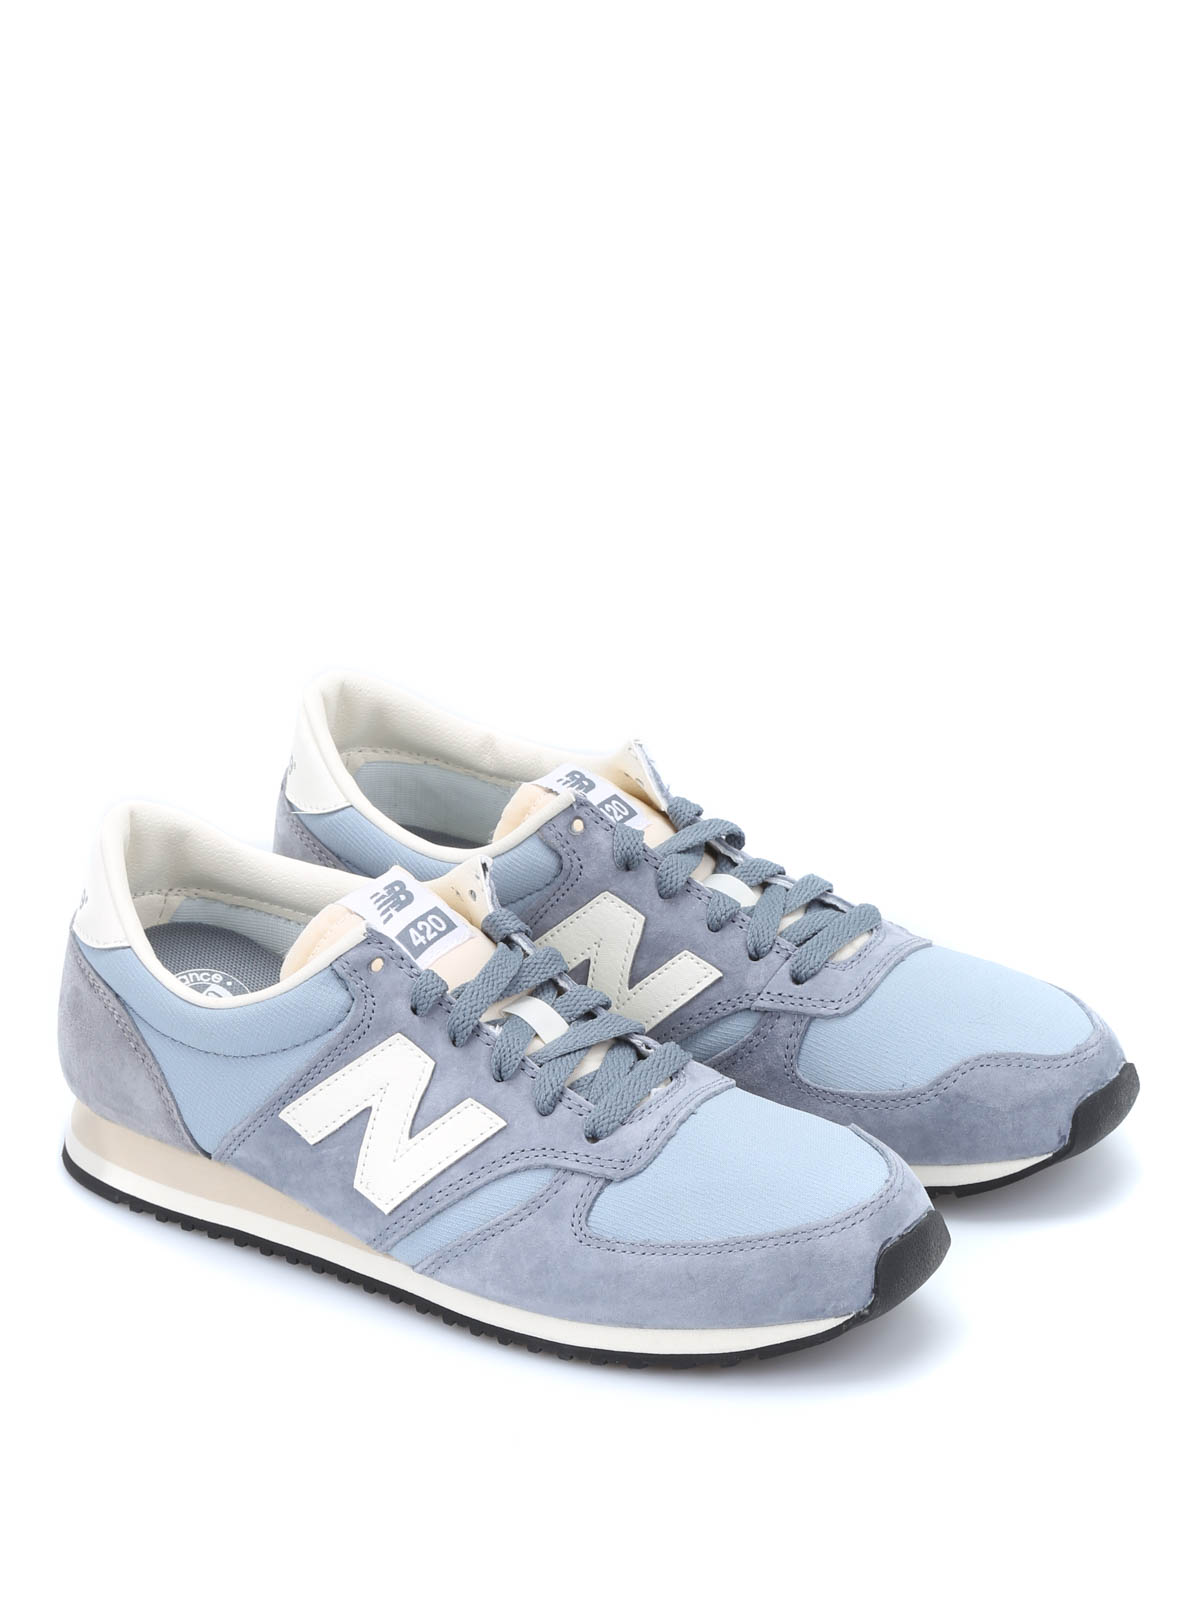 New Balance 420 pigskin sneakers Zapatillas U420RPBD12